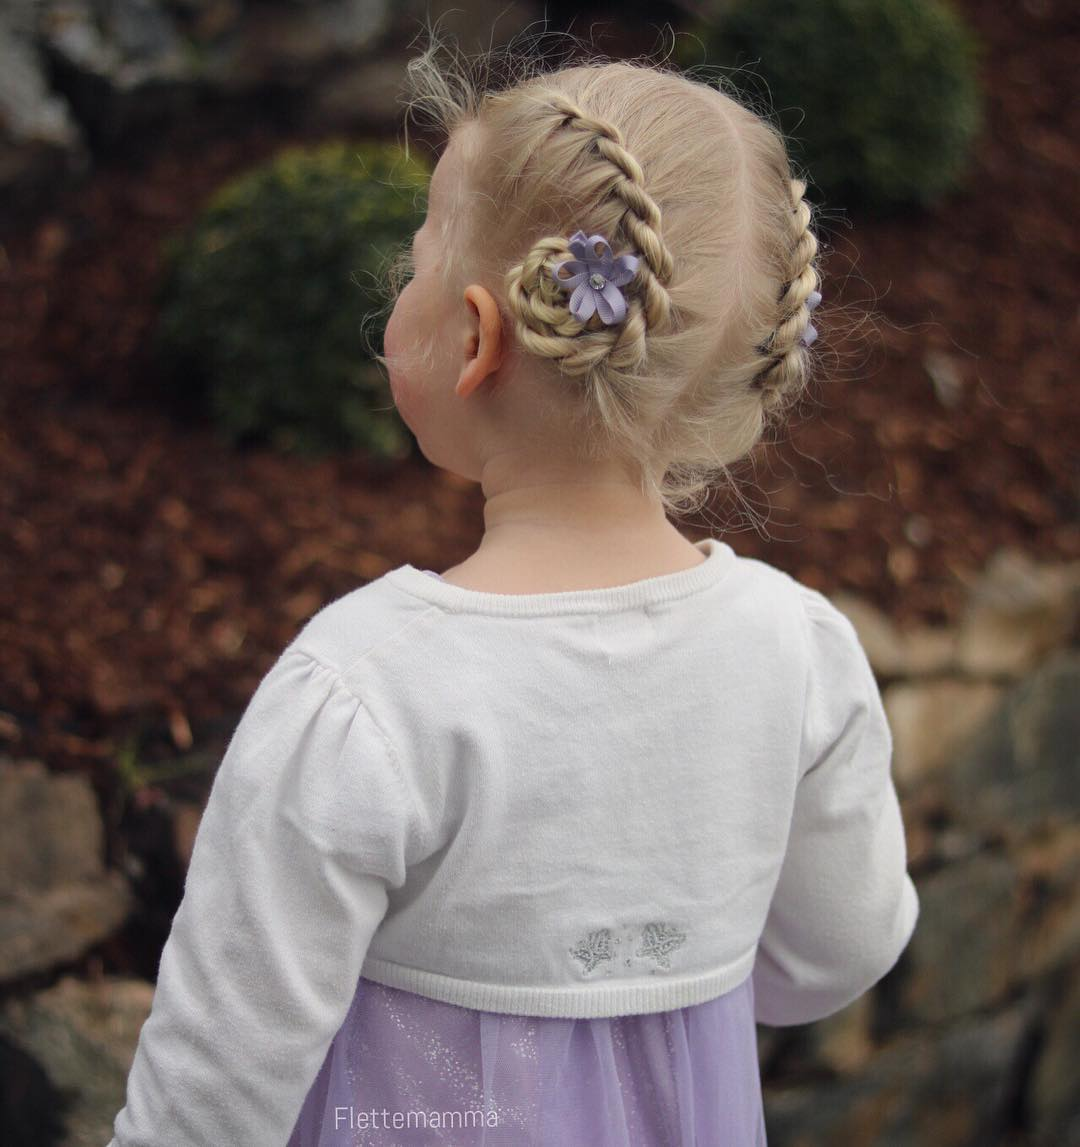 Astonishing 40 Cool Hairstyles For Little Girls On Any Occasion Hairstyle Inspiration Daily Dogsangcom